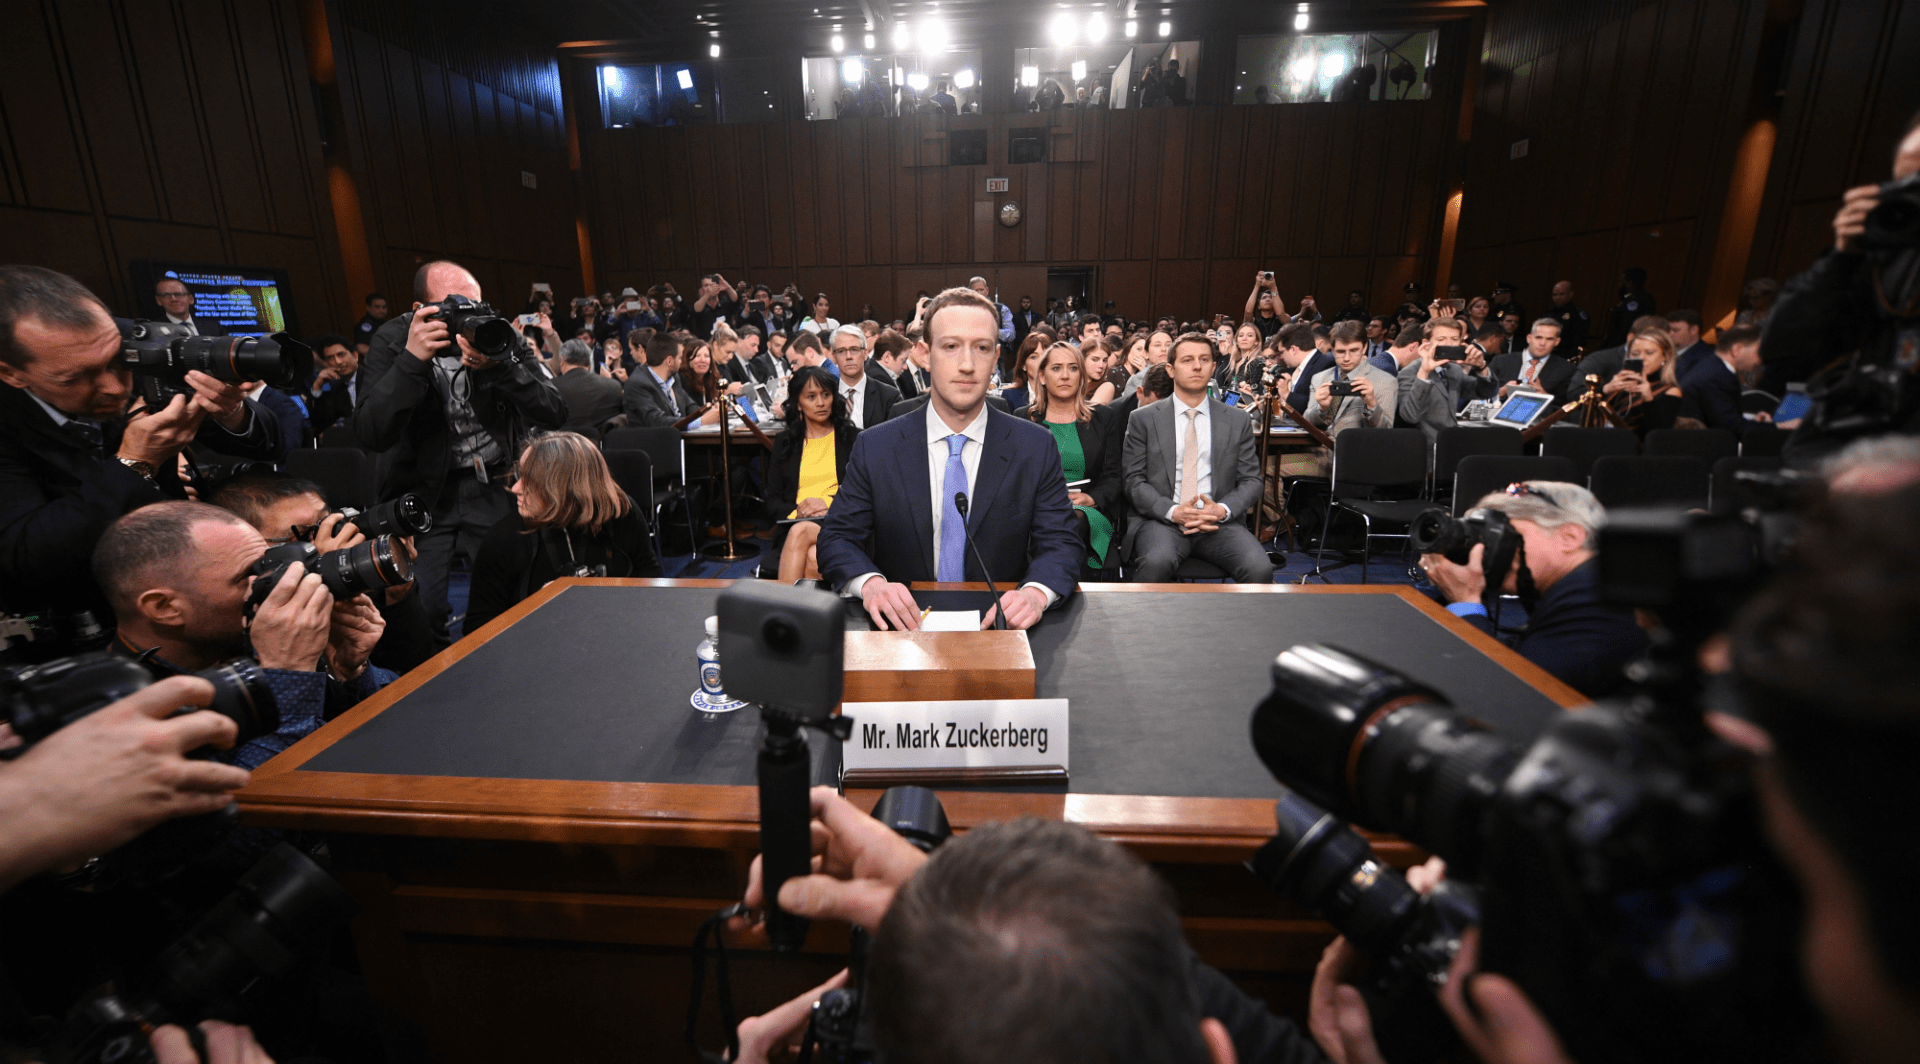 Mark Zuckerberg compareciendo ante el Congreso de EEUU - (Foto: Jim Watson - AFP)